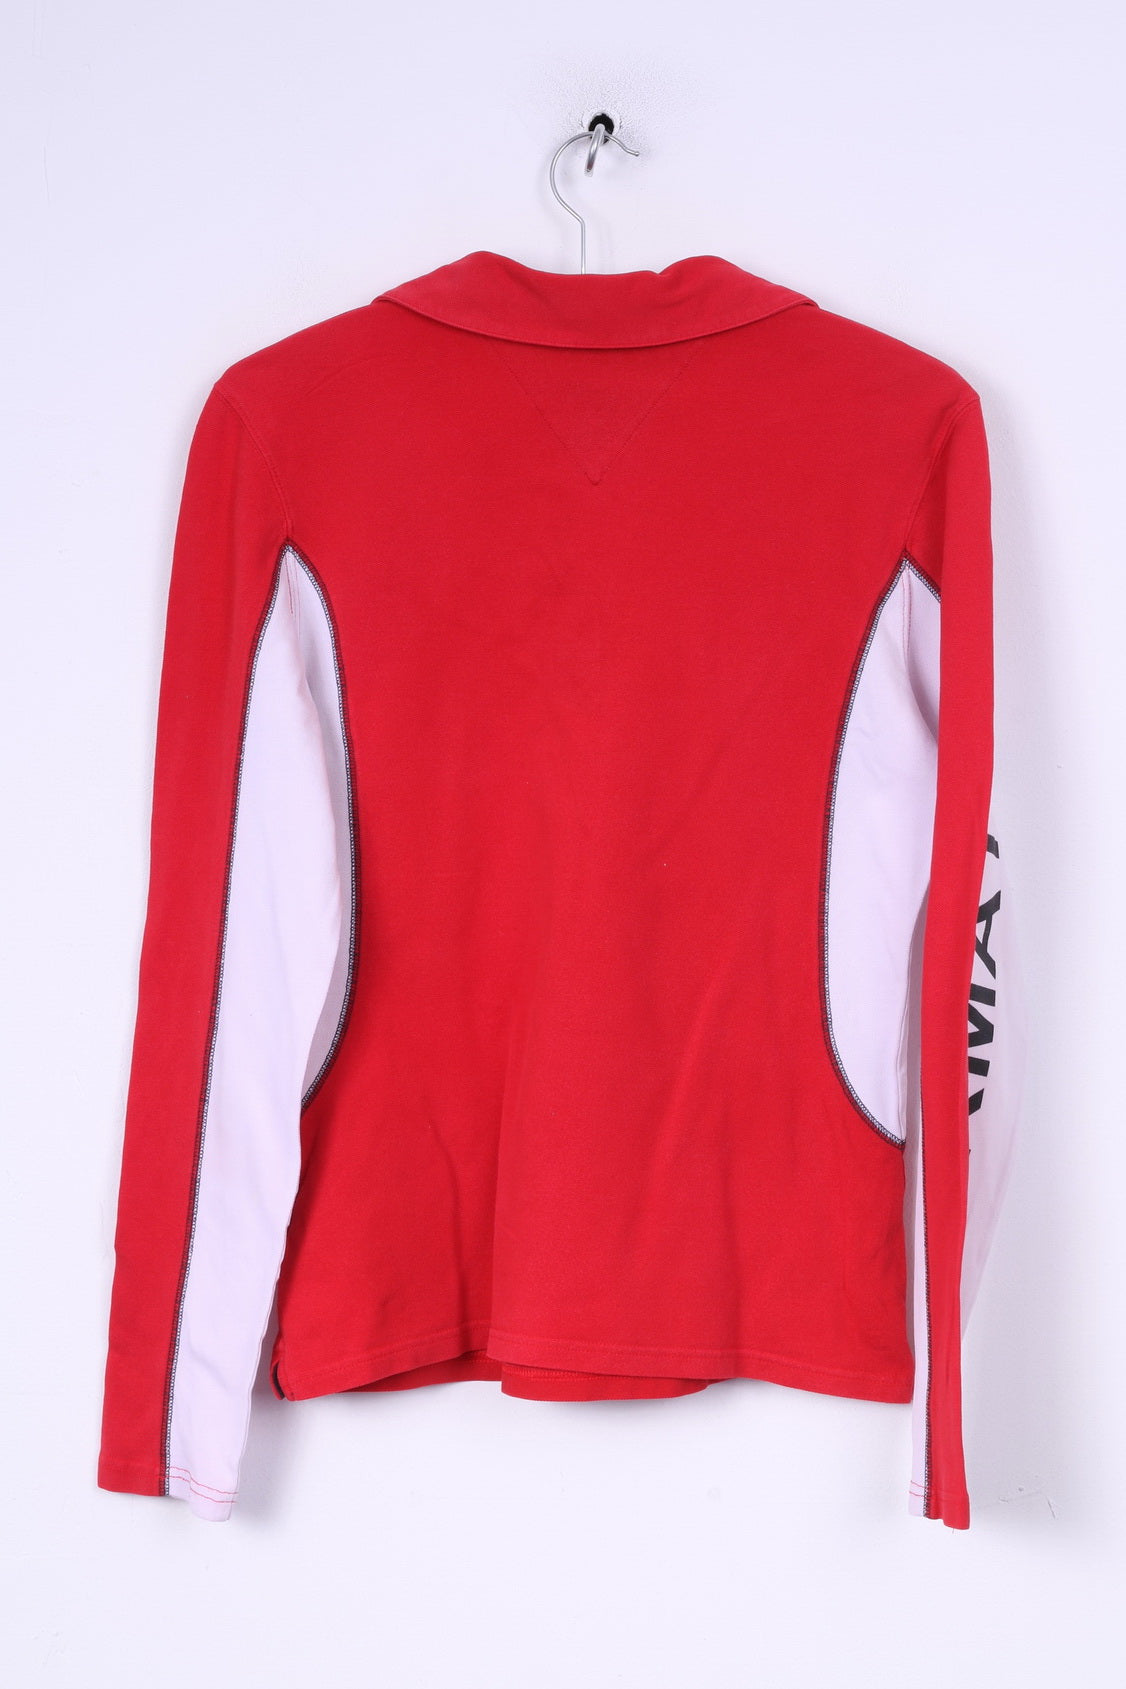 cb954f3cc ... Tommy Hilfiger Womens 40 L Polo Shirt Long Sleeve Red Cotton Best Of  The Alps